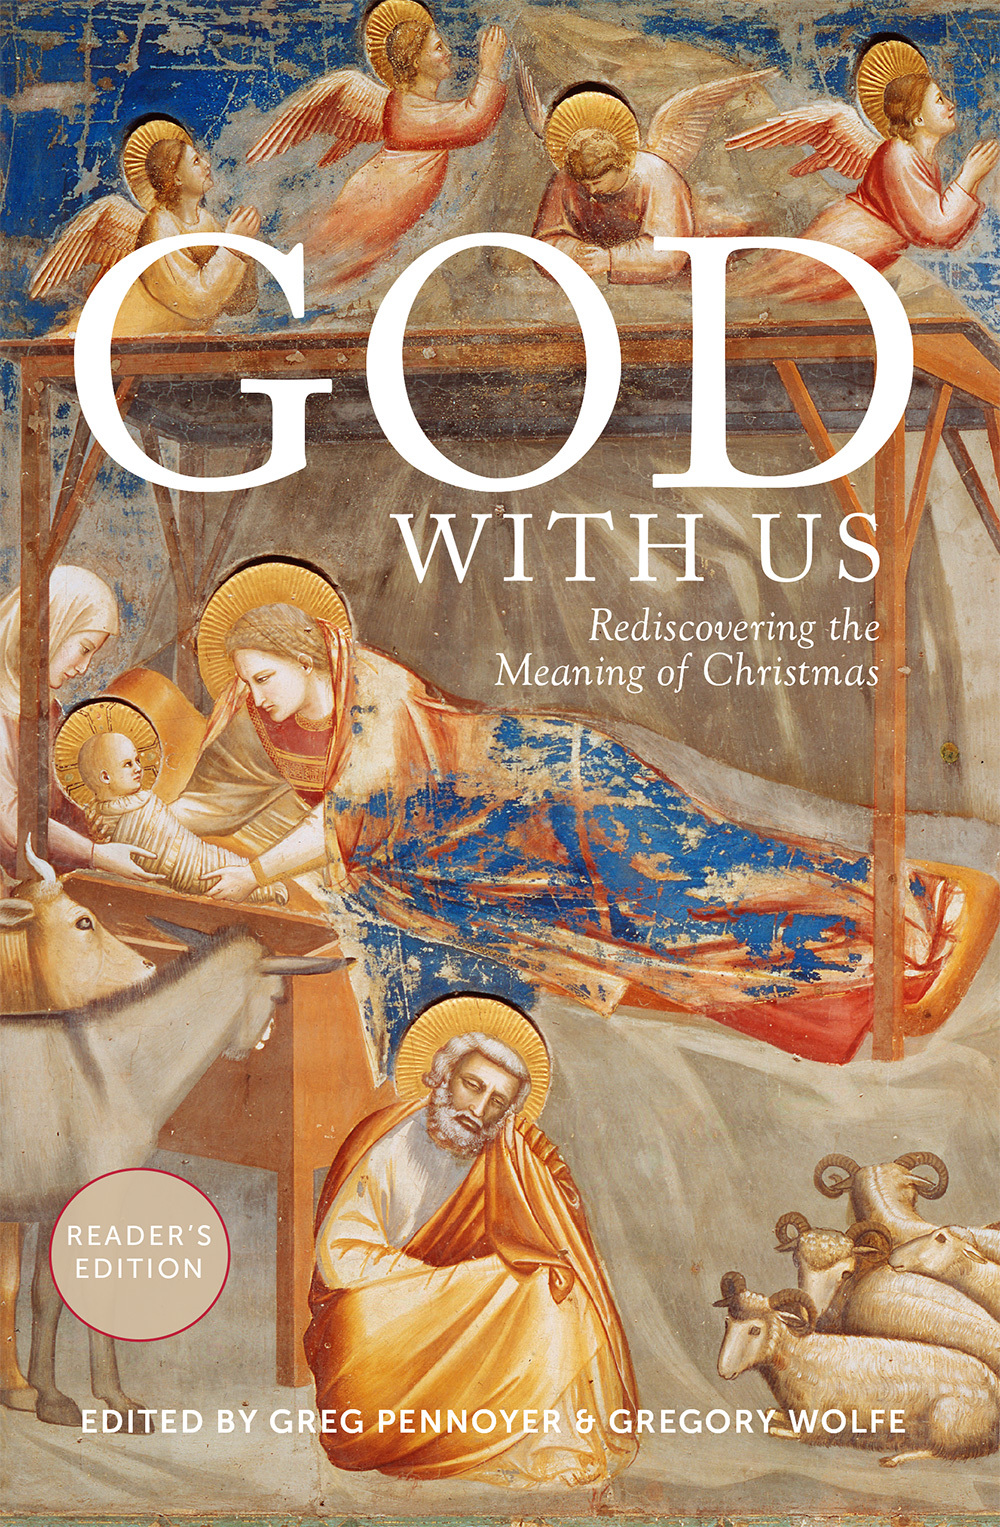 God With Us: God With Us: Rediscovering the Meaning of Christmas (Reader's Edition)